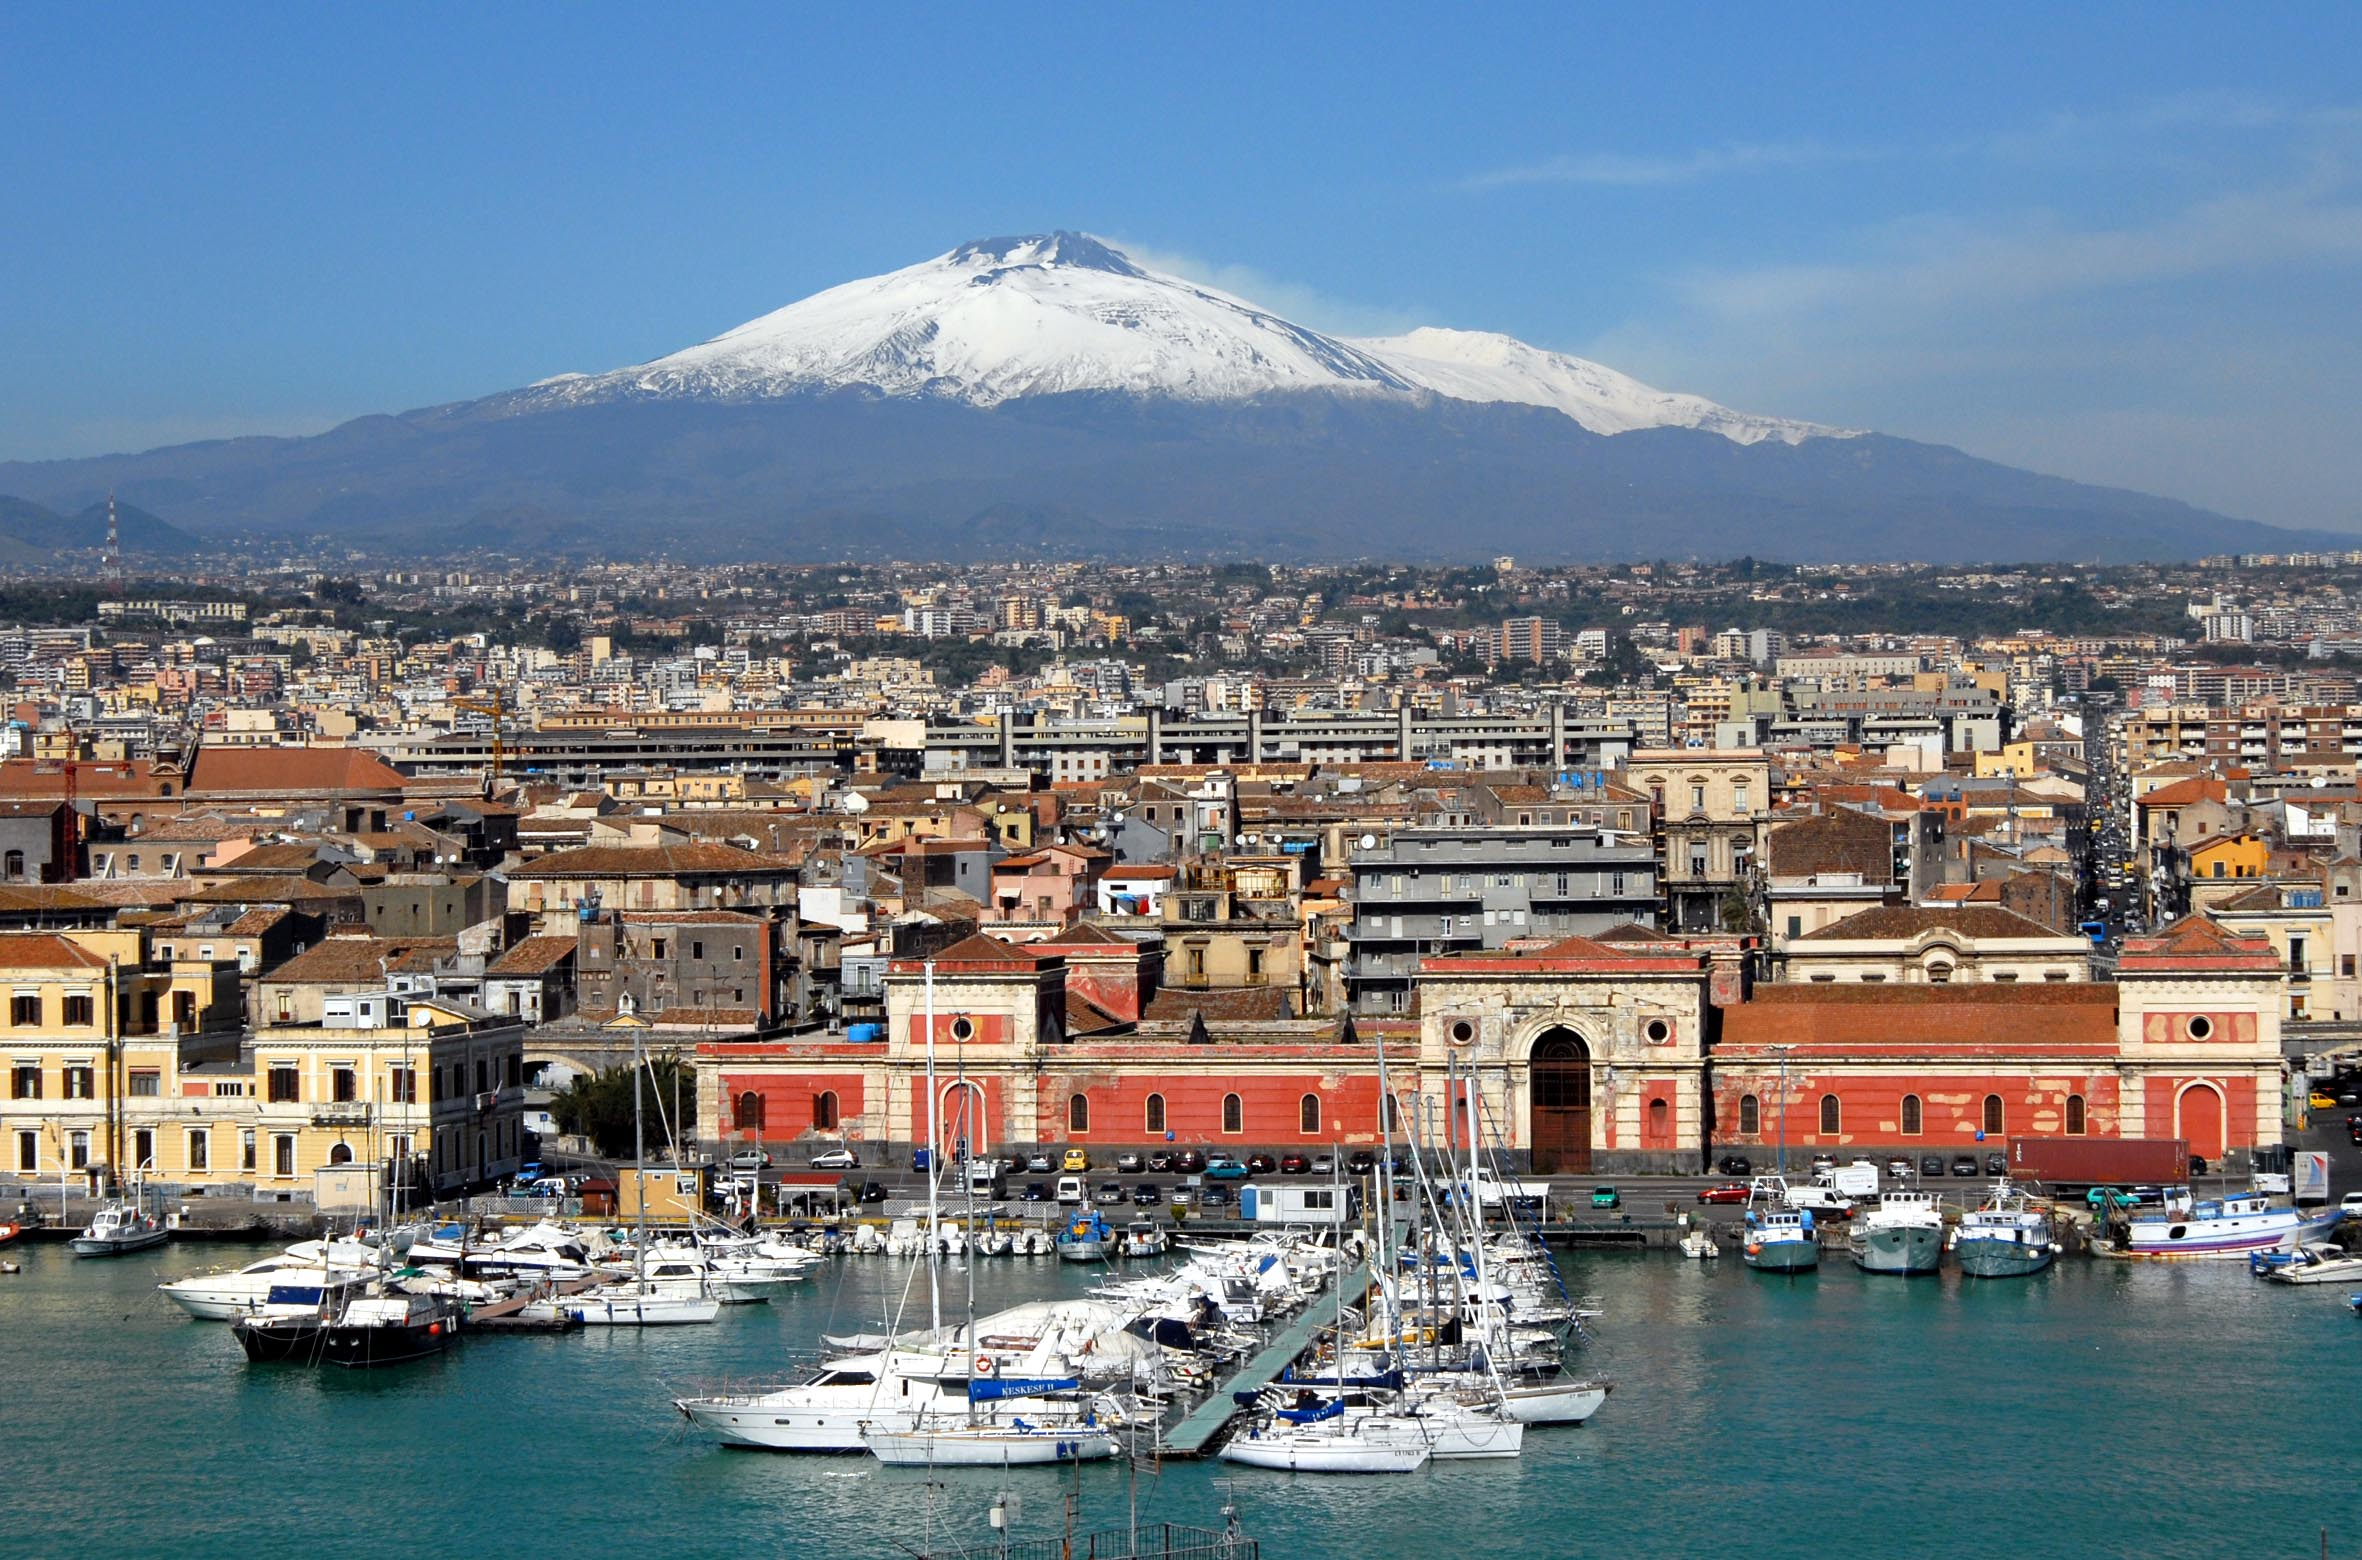 Catania's harbour view